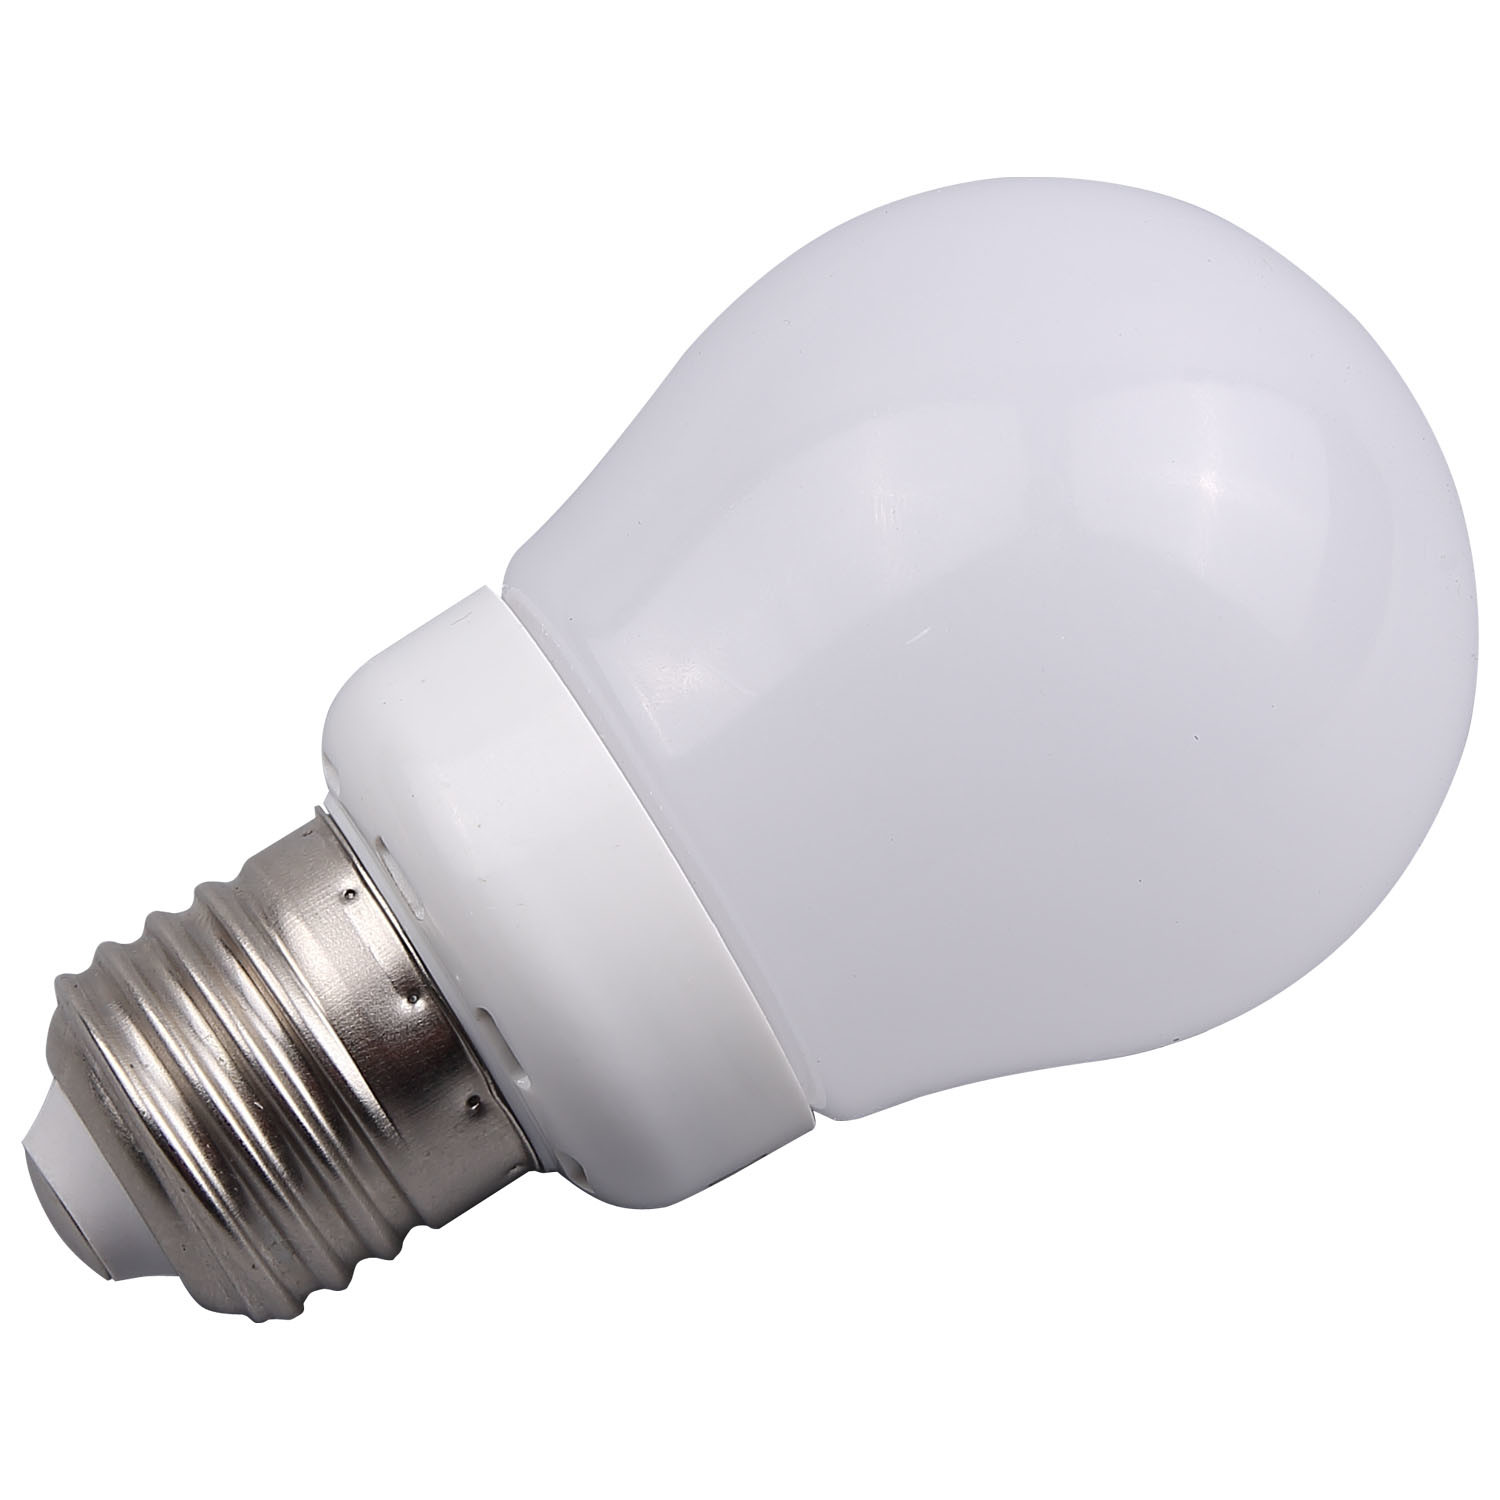 A19 3-12W 180 Degree 220-240V Best Price 30000h LED Bulb